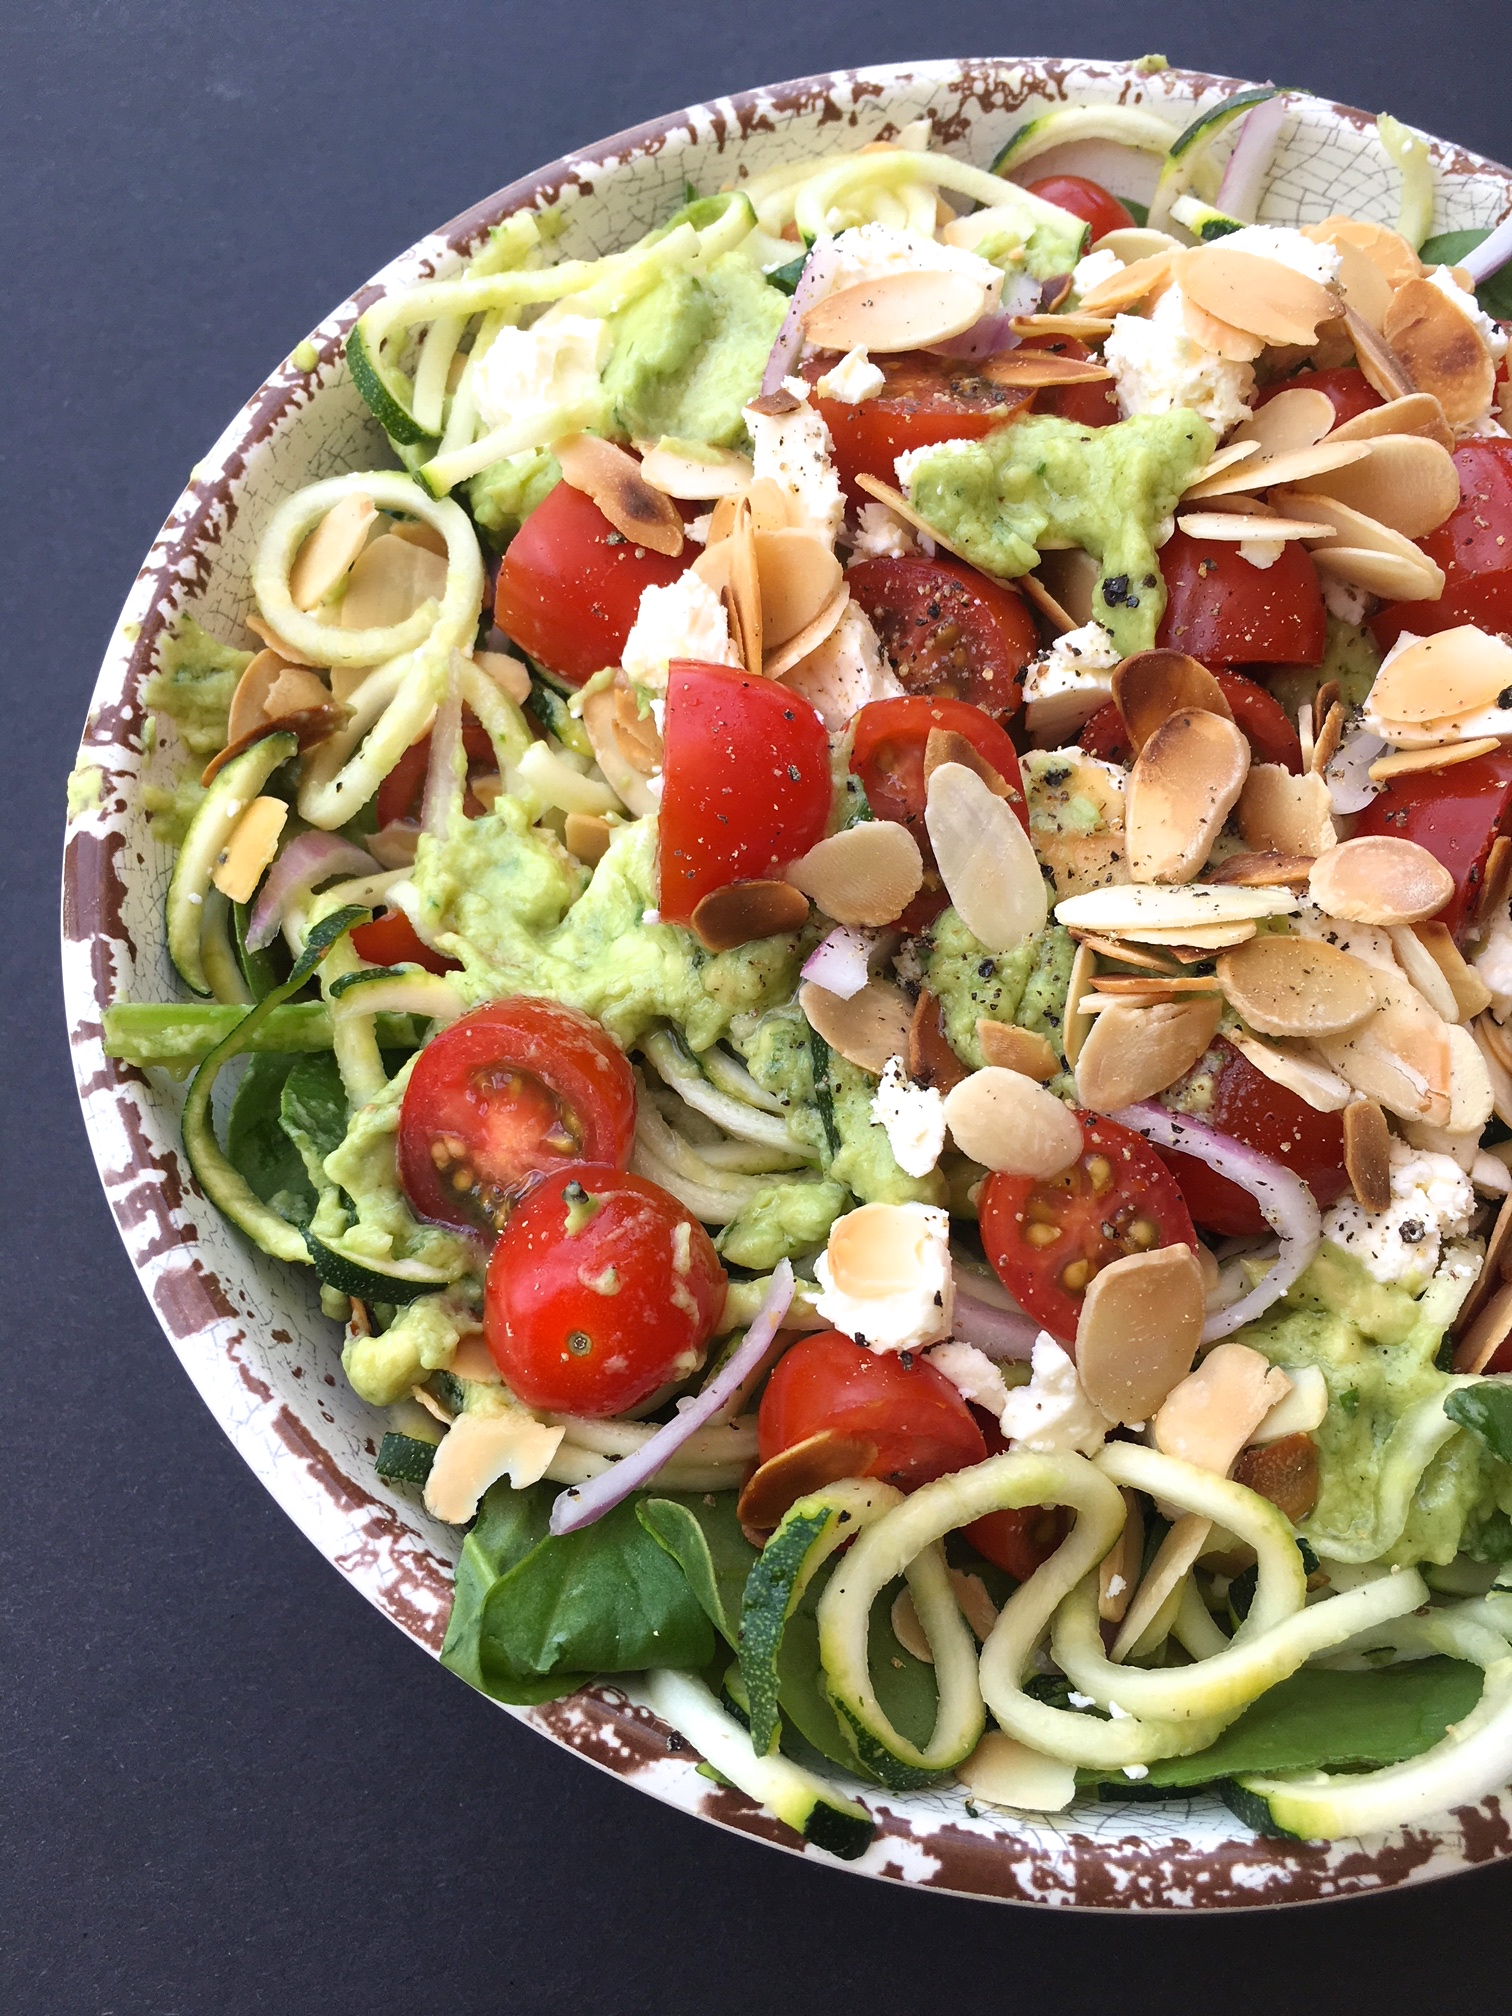 Zucchini Noodle Salad with Creamy Avocado Dressing